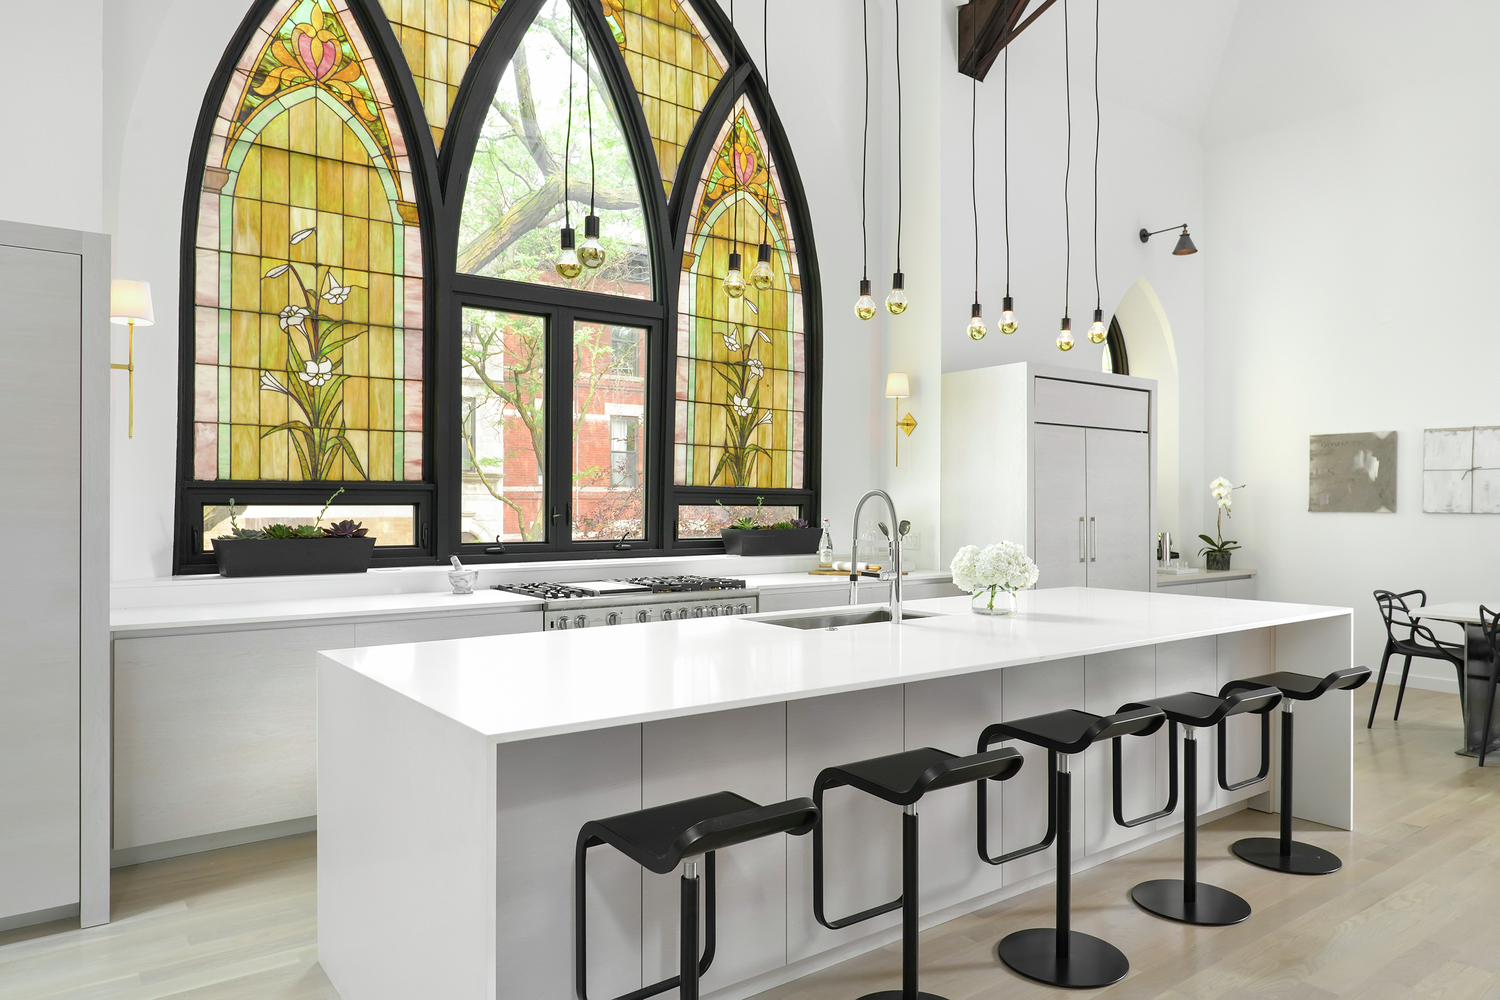 Church Conversion into a Residence Jim Tschetter